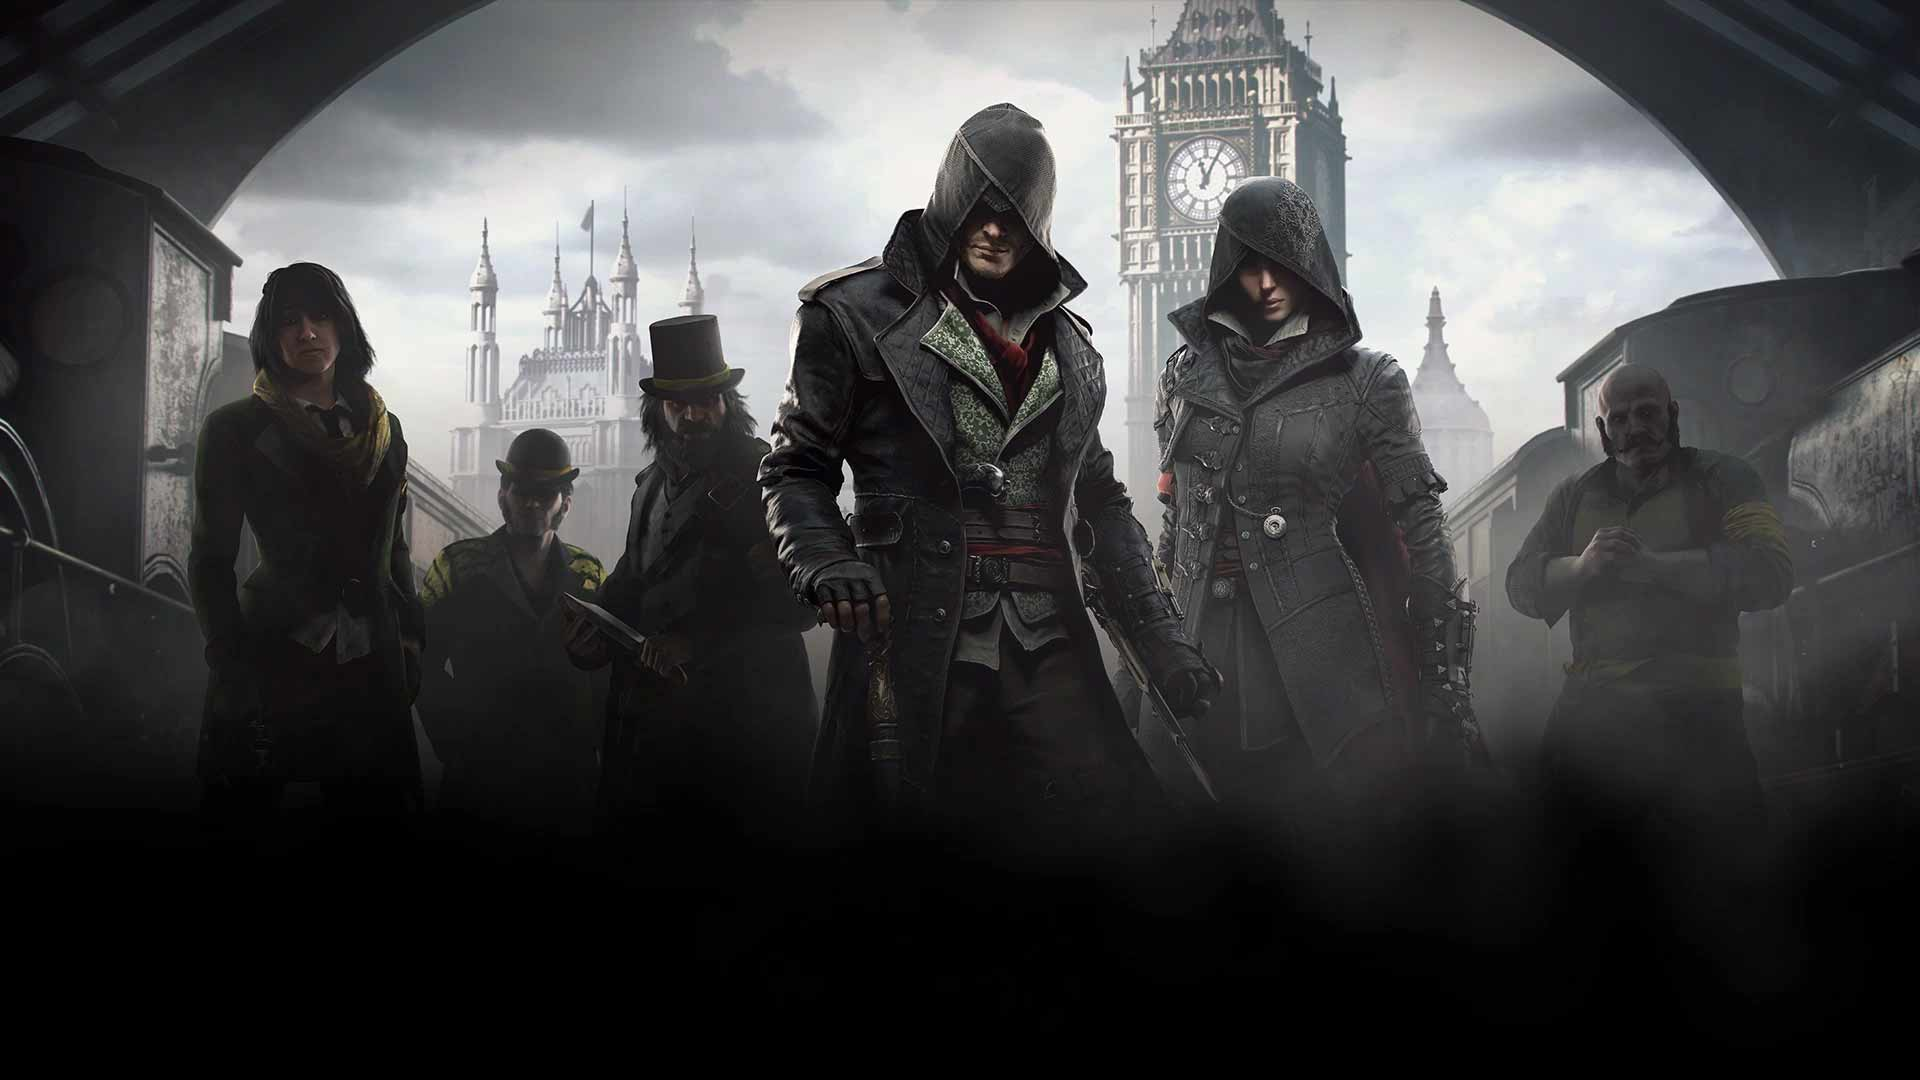 Assassin's creed syndicate pc patch 1. 4 vs patch 1. 31 frame rate.